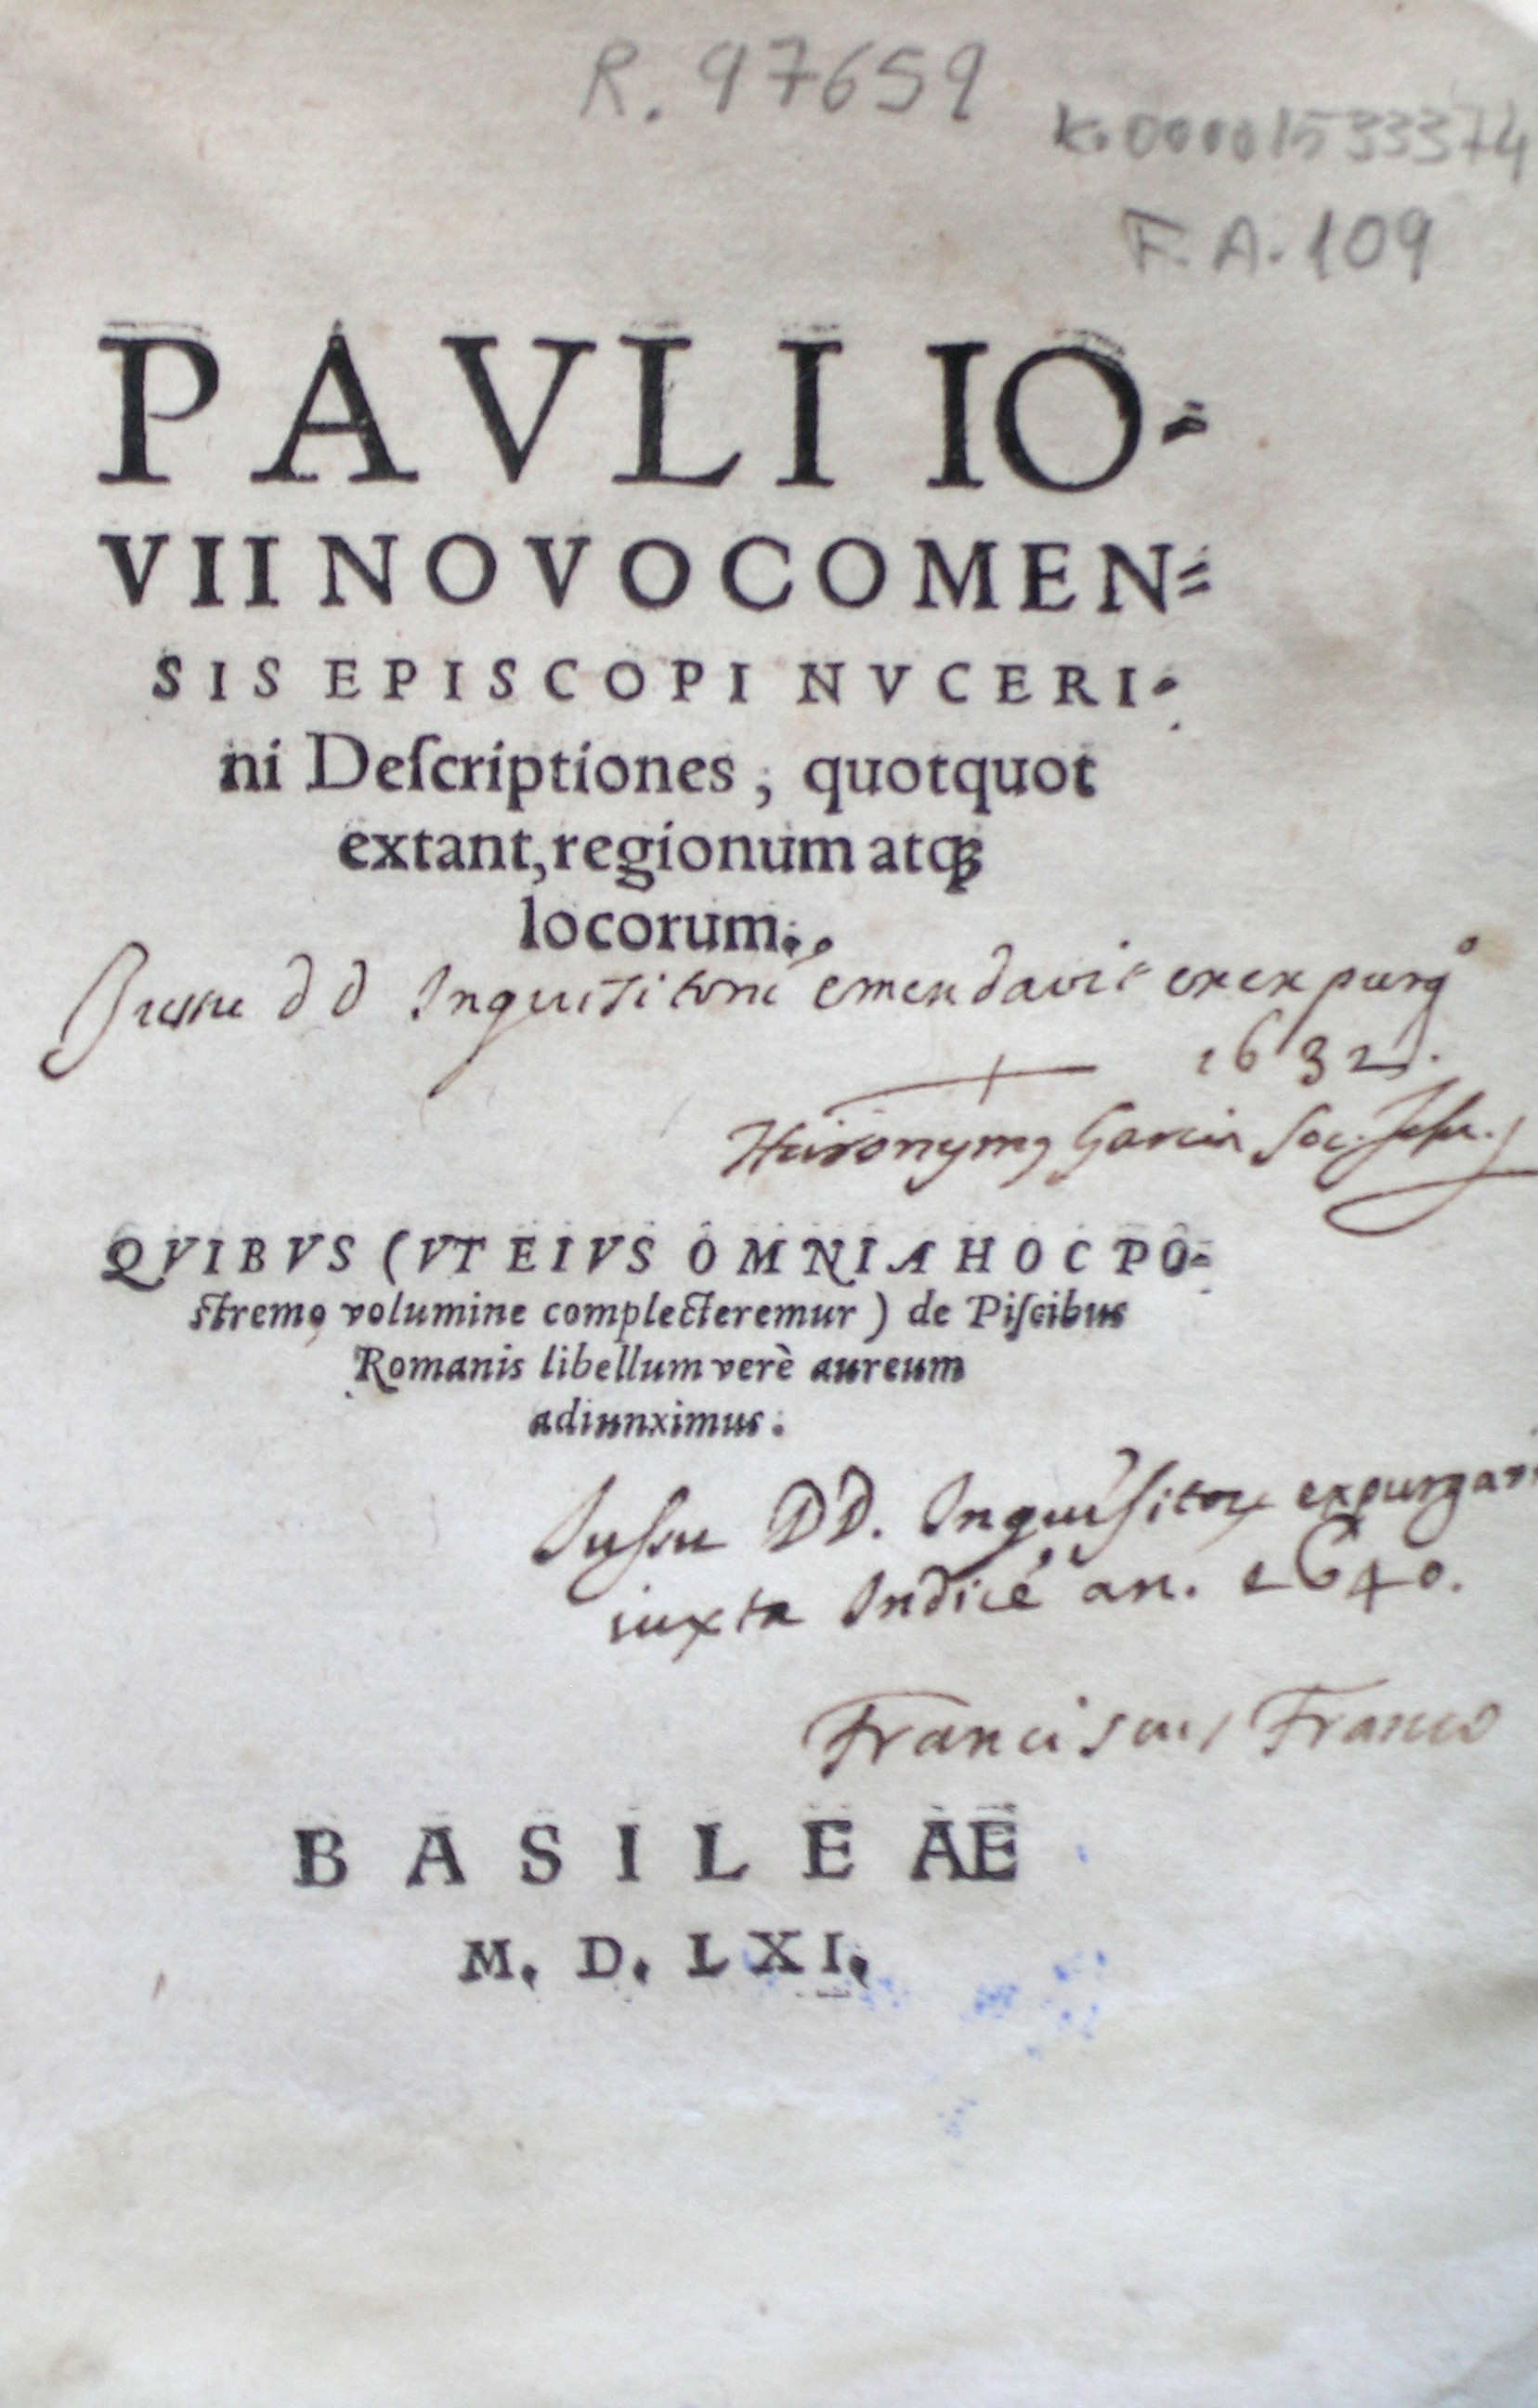 Descriptiones quotquot extant regionum at[que] locorum…, 1561